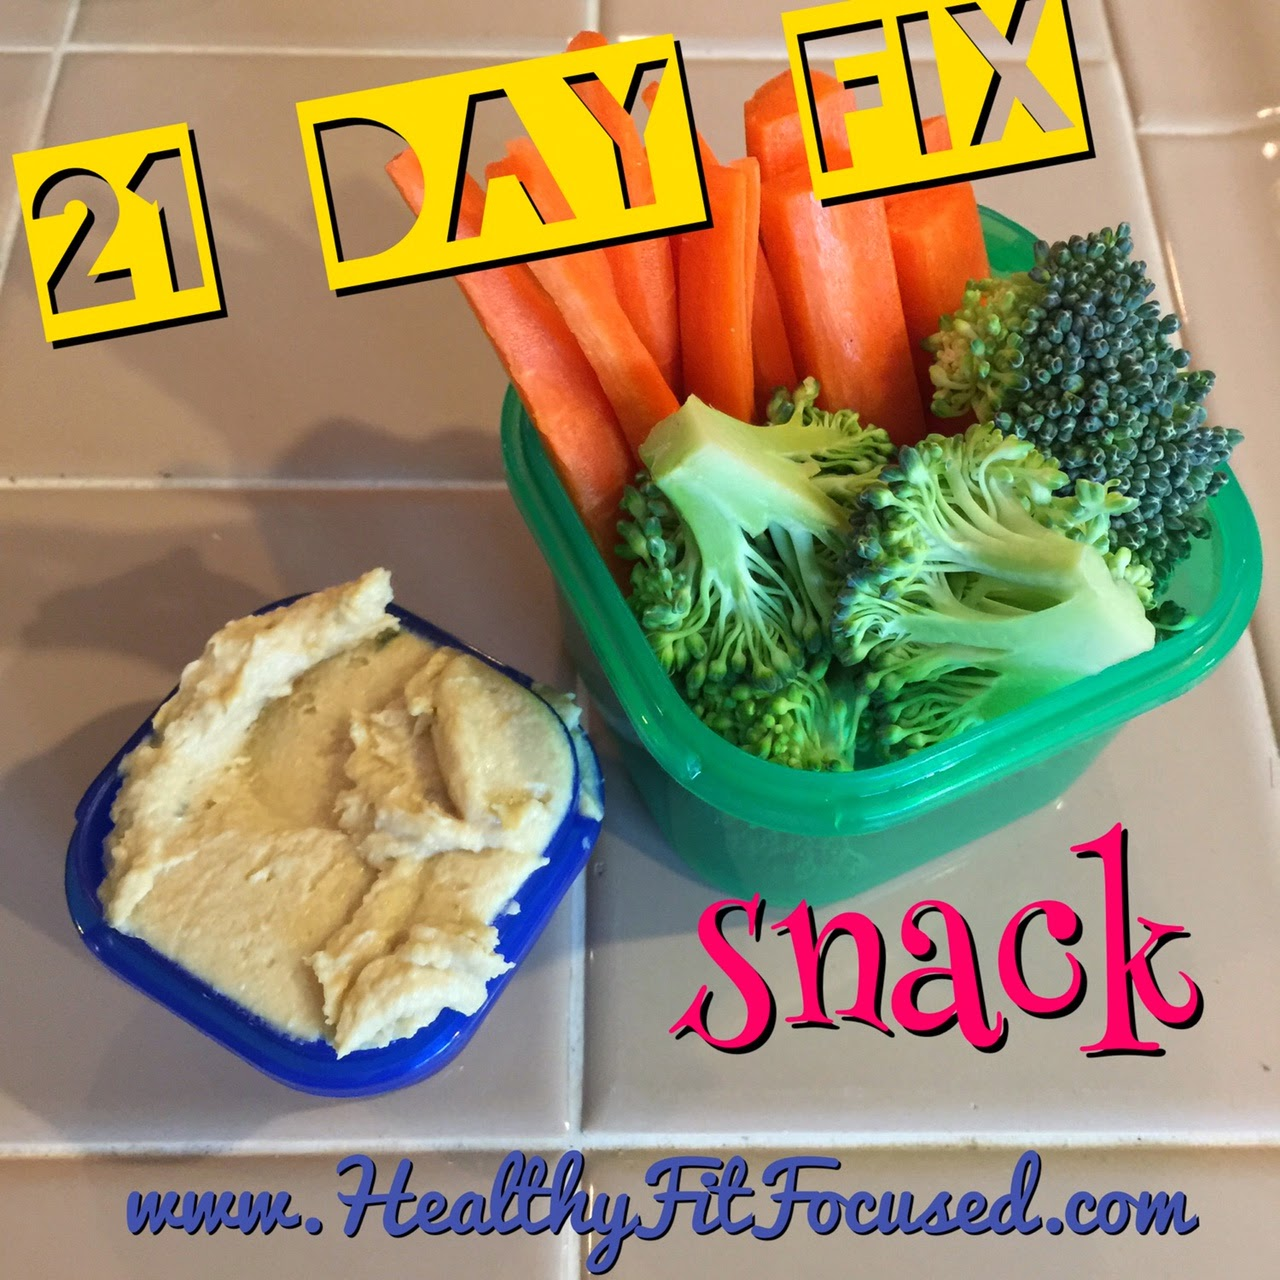 21 Day Fix Snacks, 21 Day Fix Extreme Snacks, www.HealthyFitFocused.com